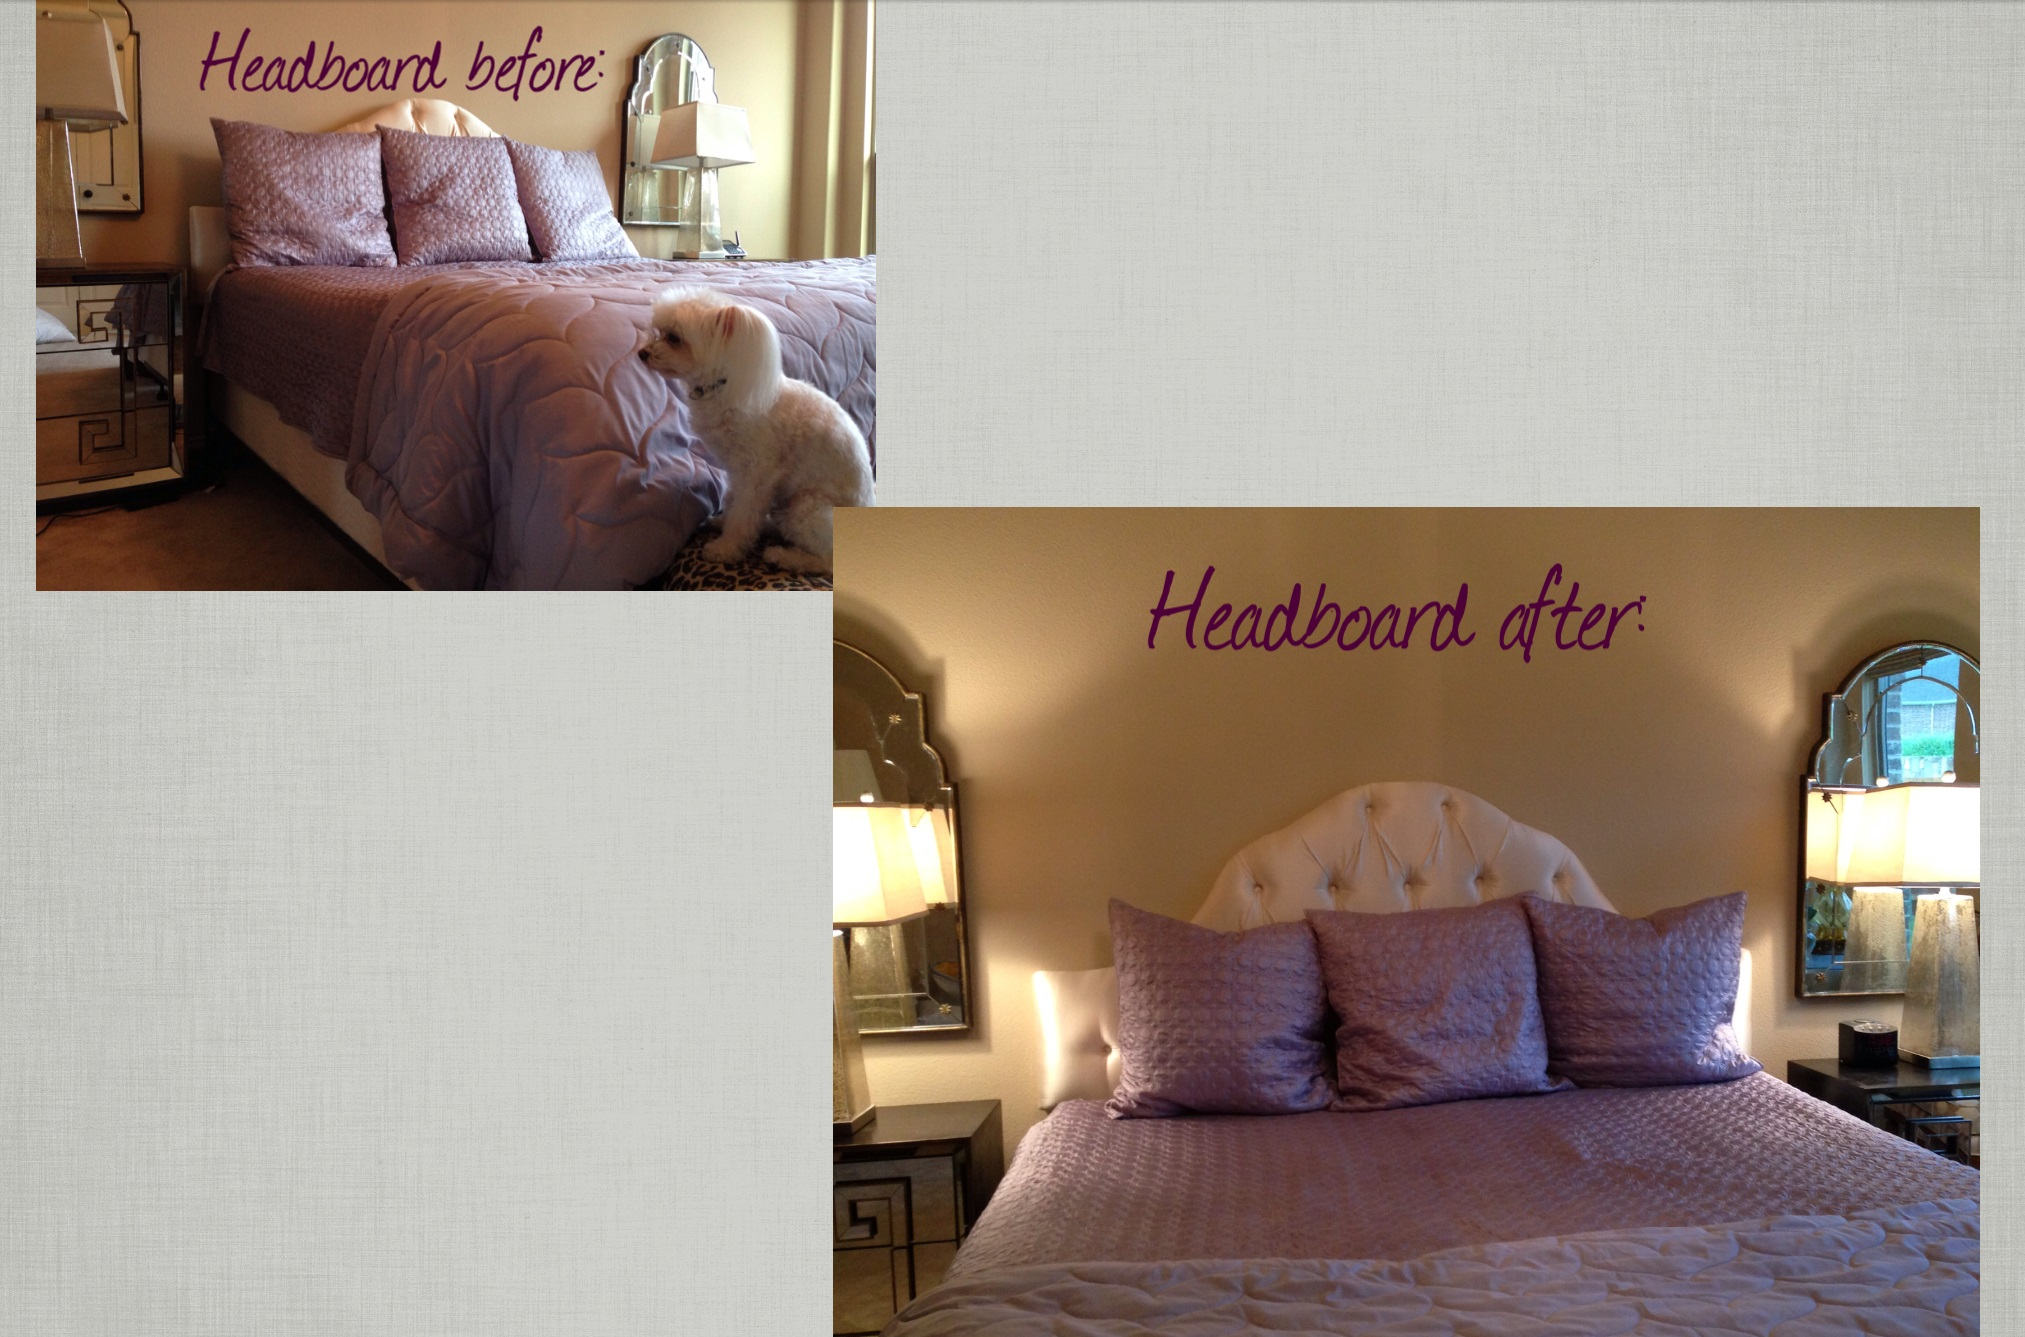 Headboard before & after